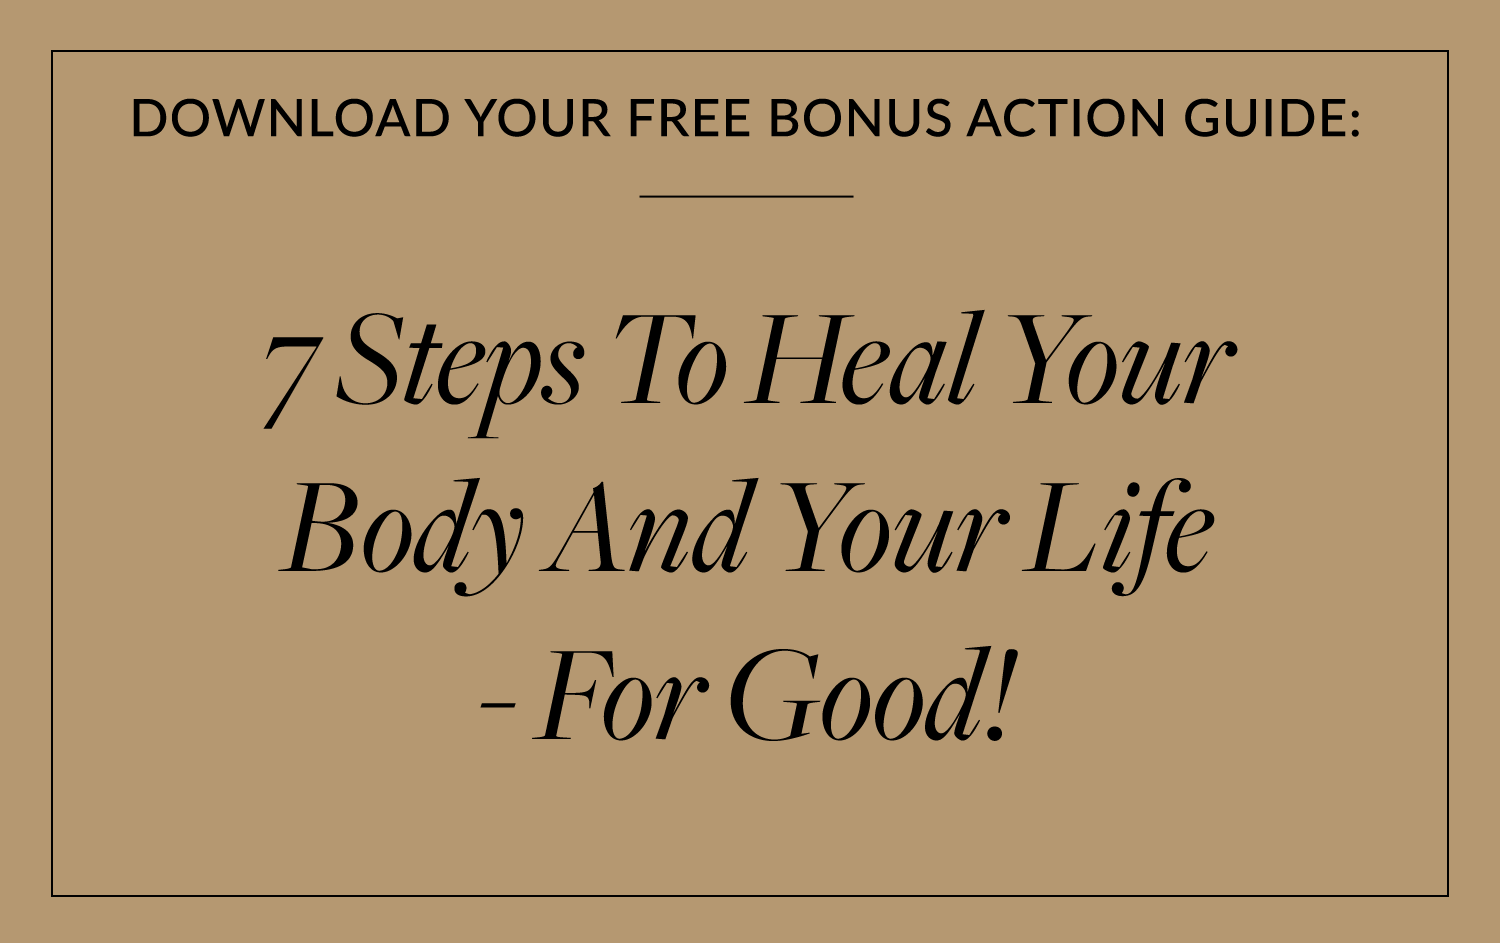 7 Steps To Heal Your Body And Your Life